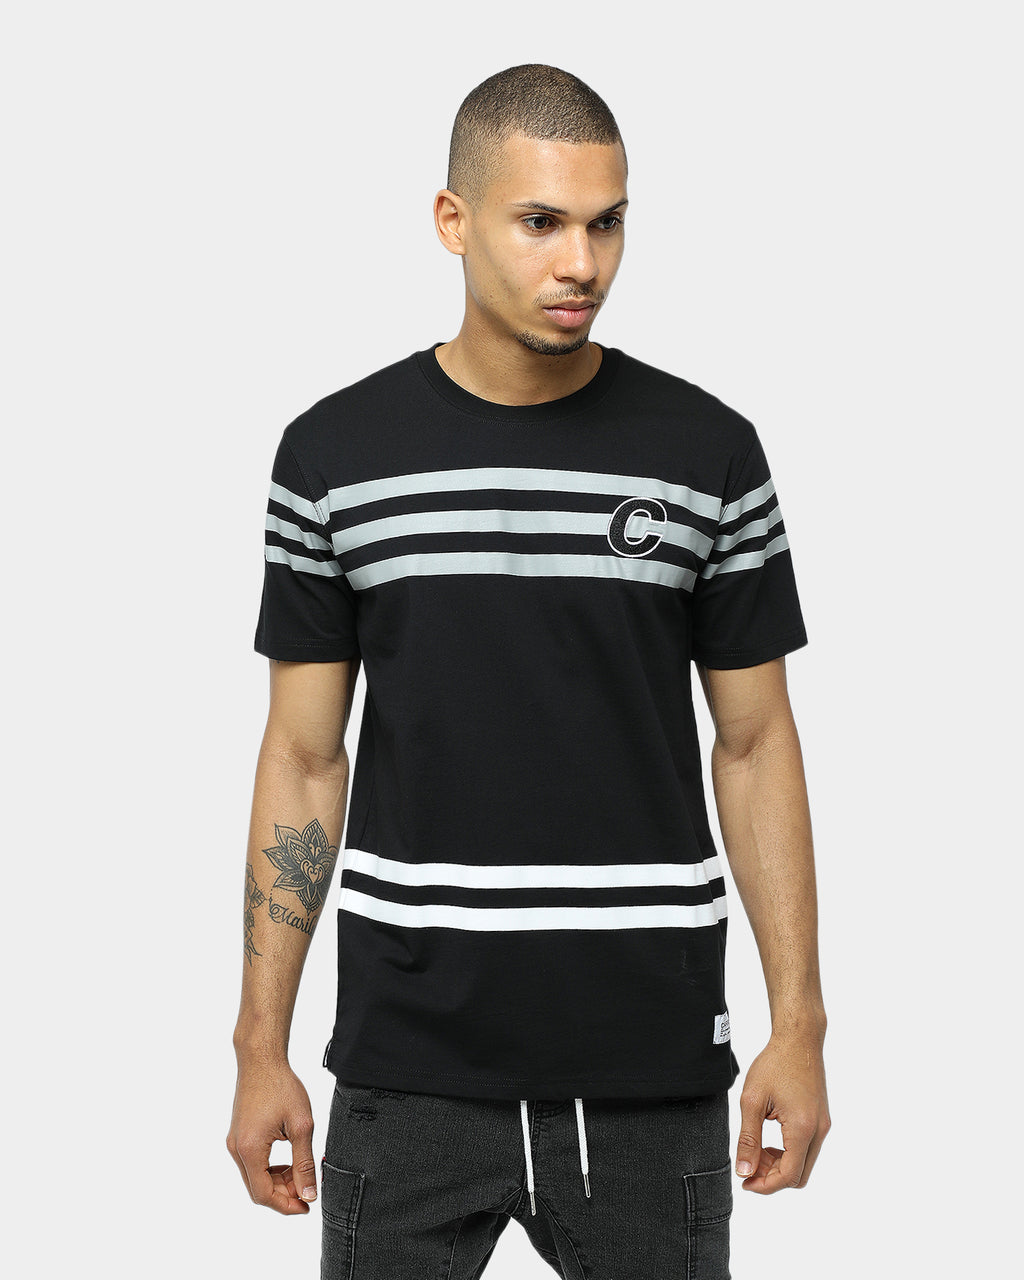 Carré Andre Classique Stripe SS Tee Black/Grey/White